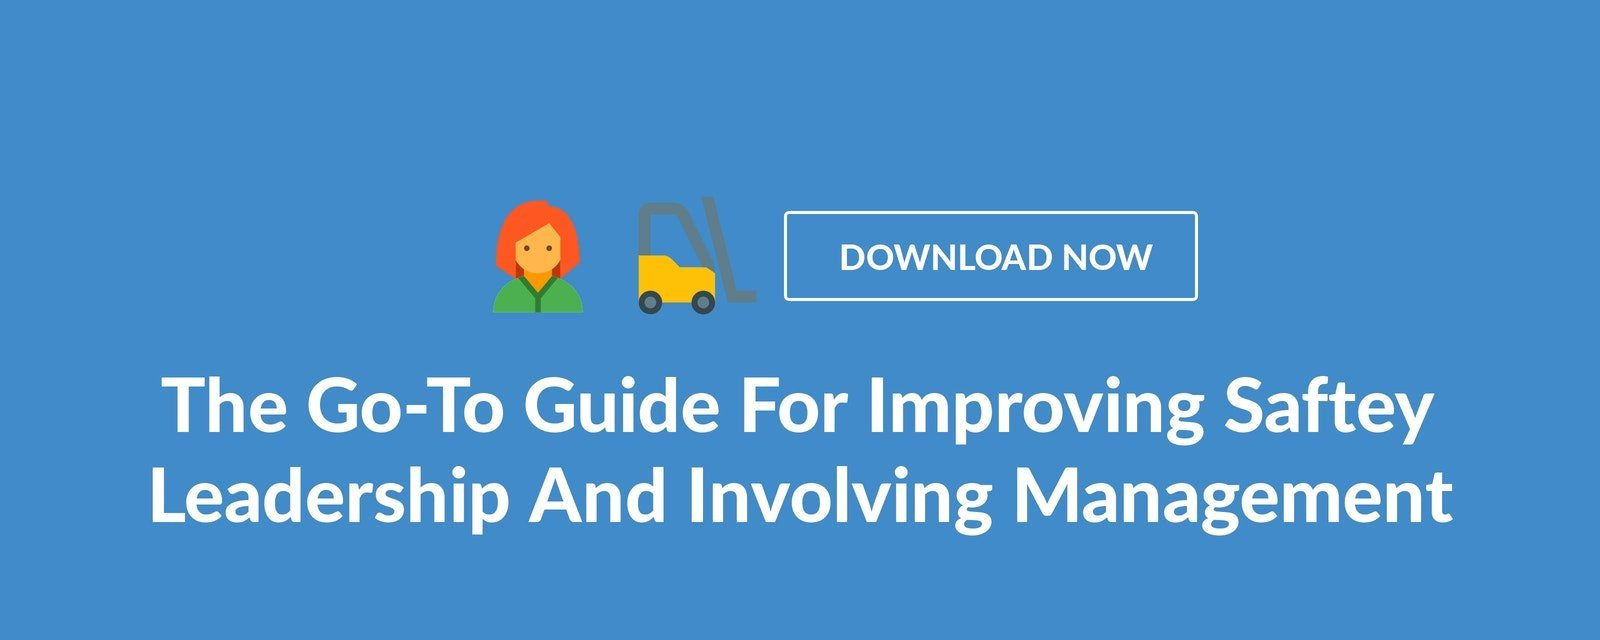 The Go-To Guide For Improving Safety Leadership And Involving Management